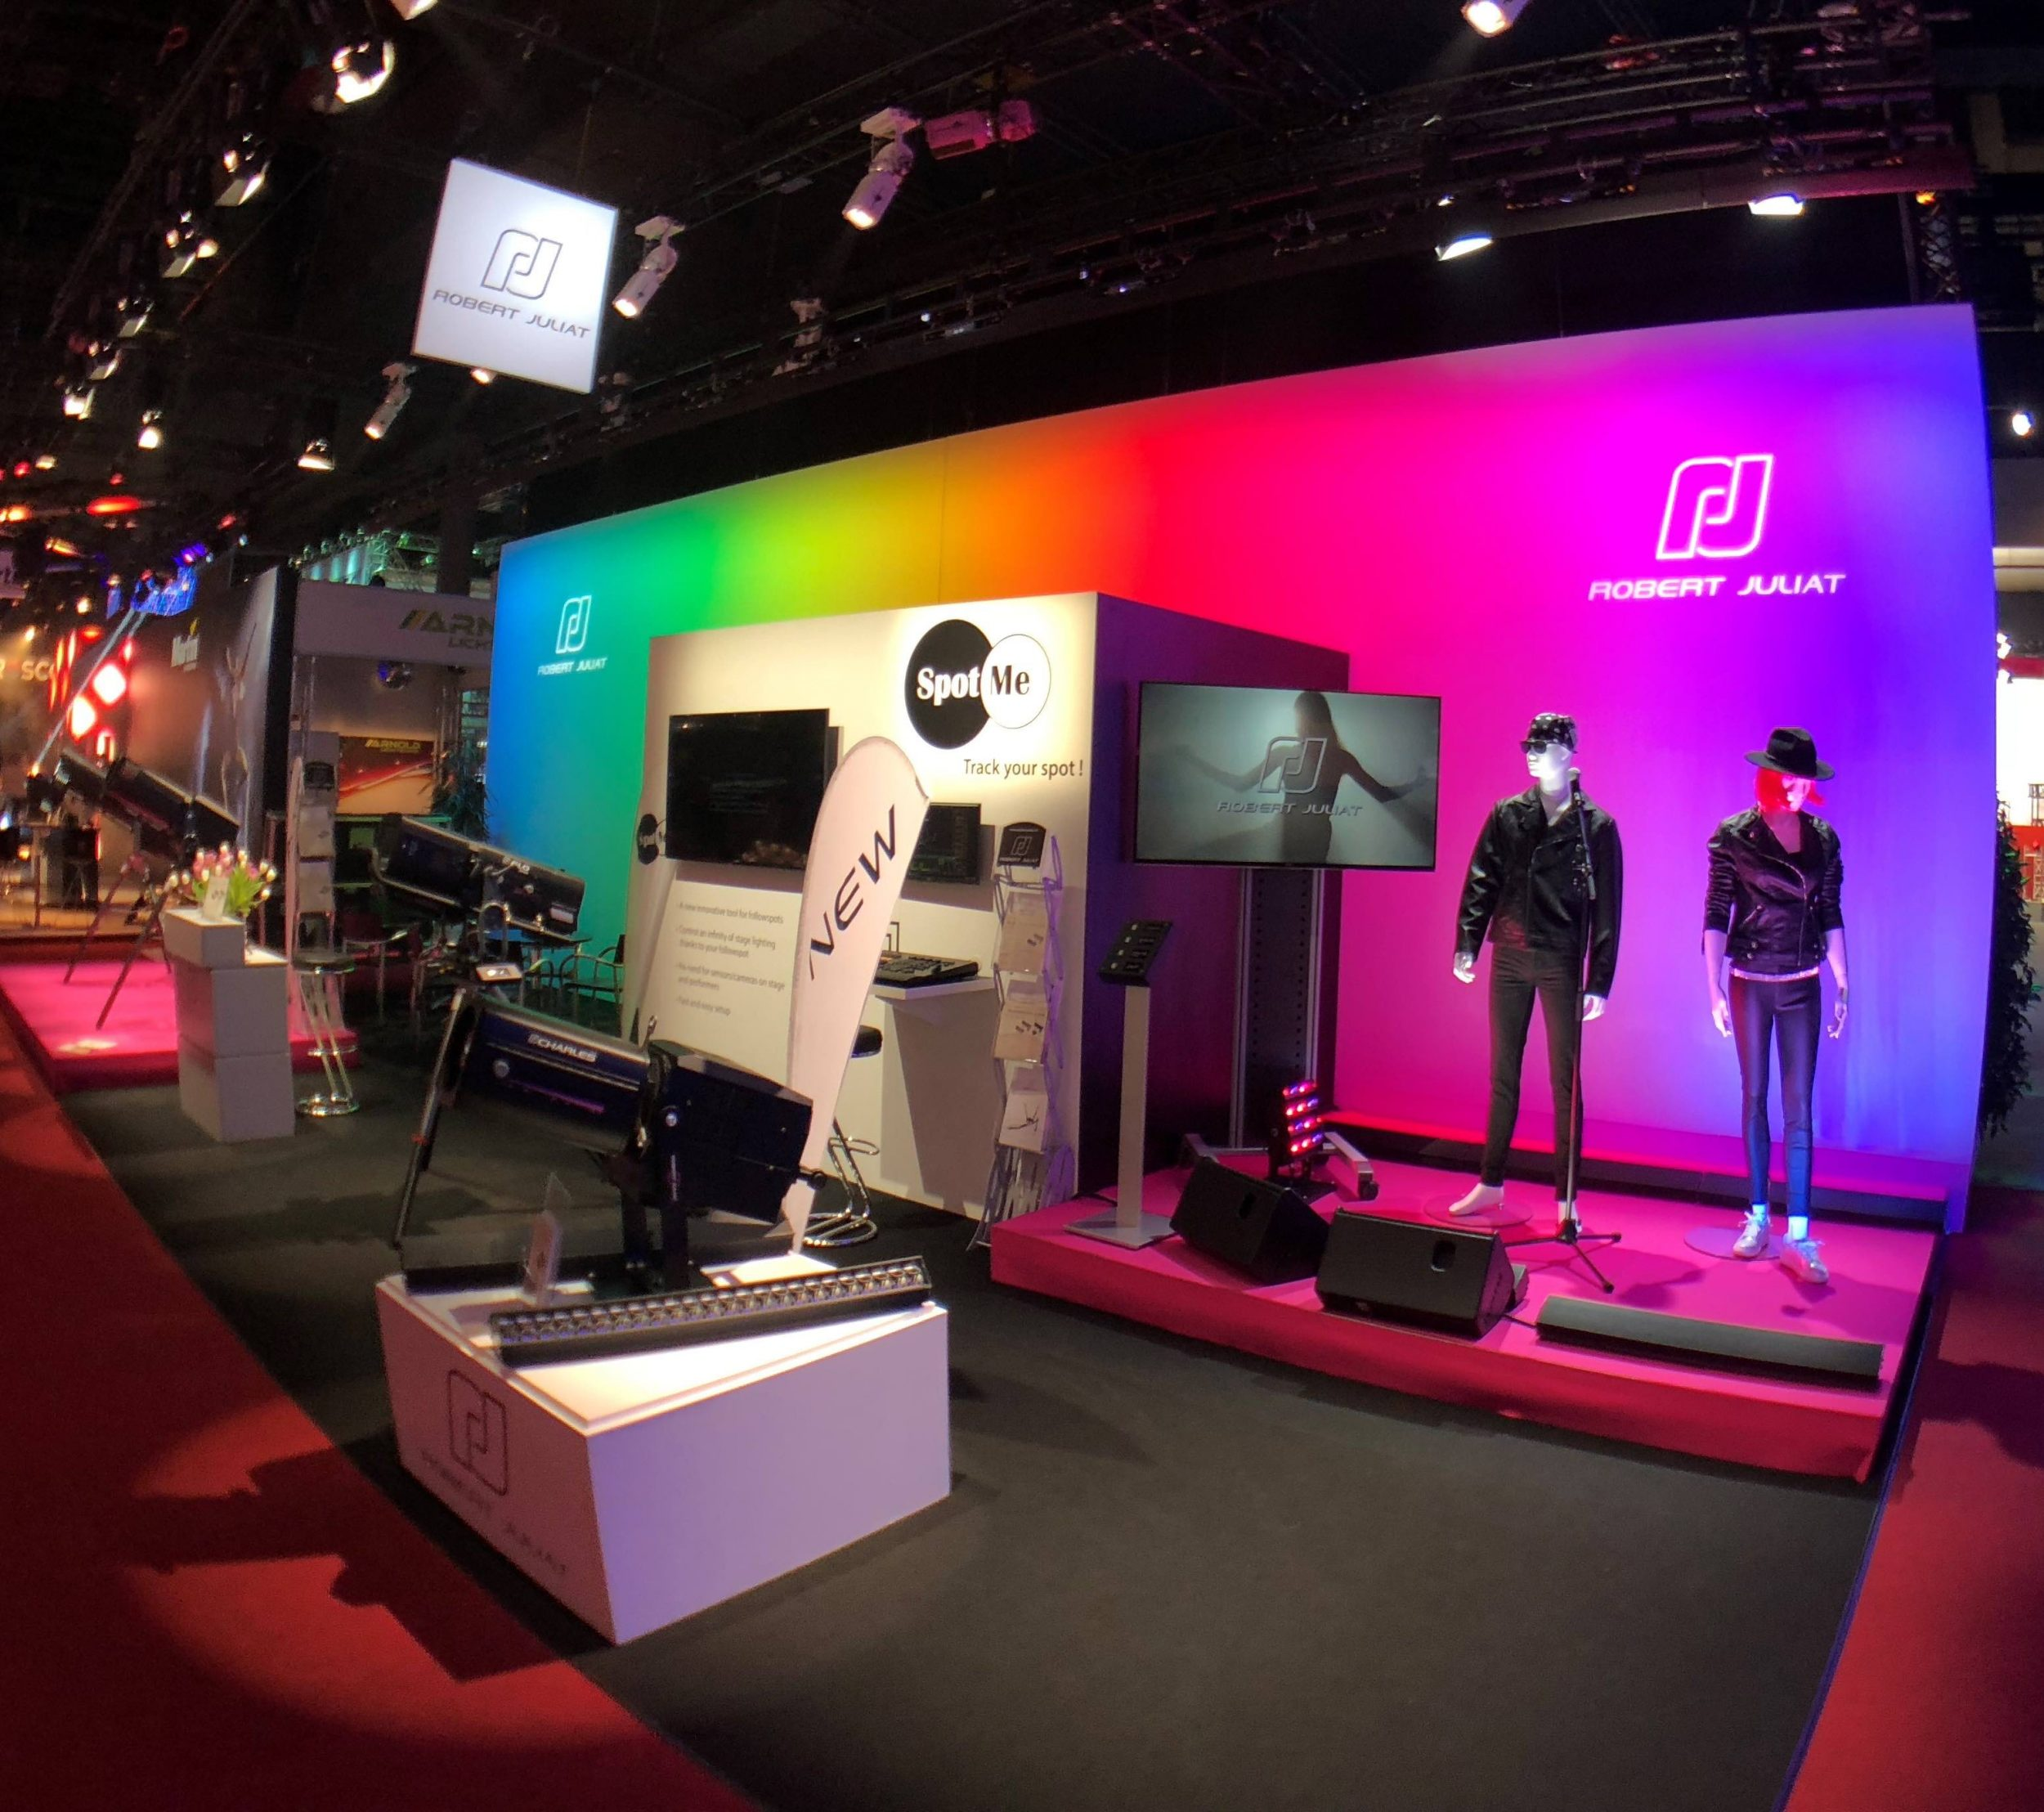 Prolight Led Robert Juliat New Products Led The Way At Prolight Sound 2018 Plsn